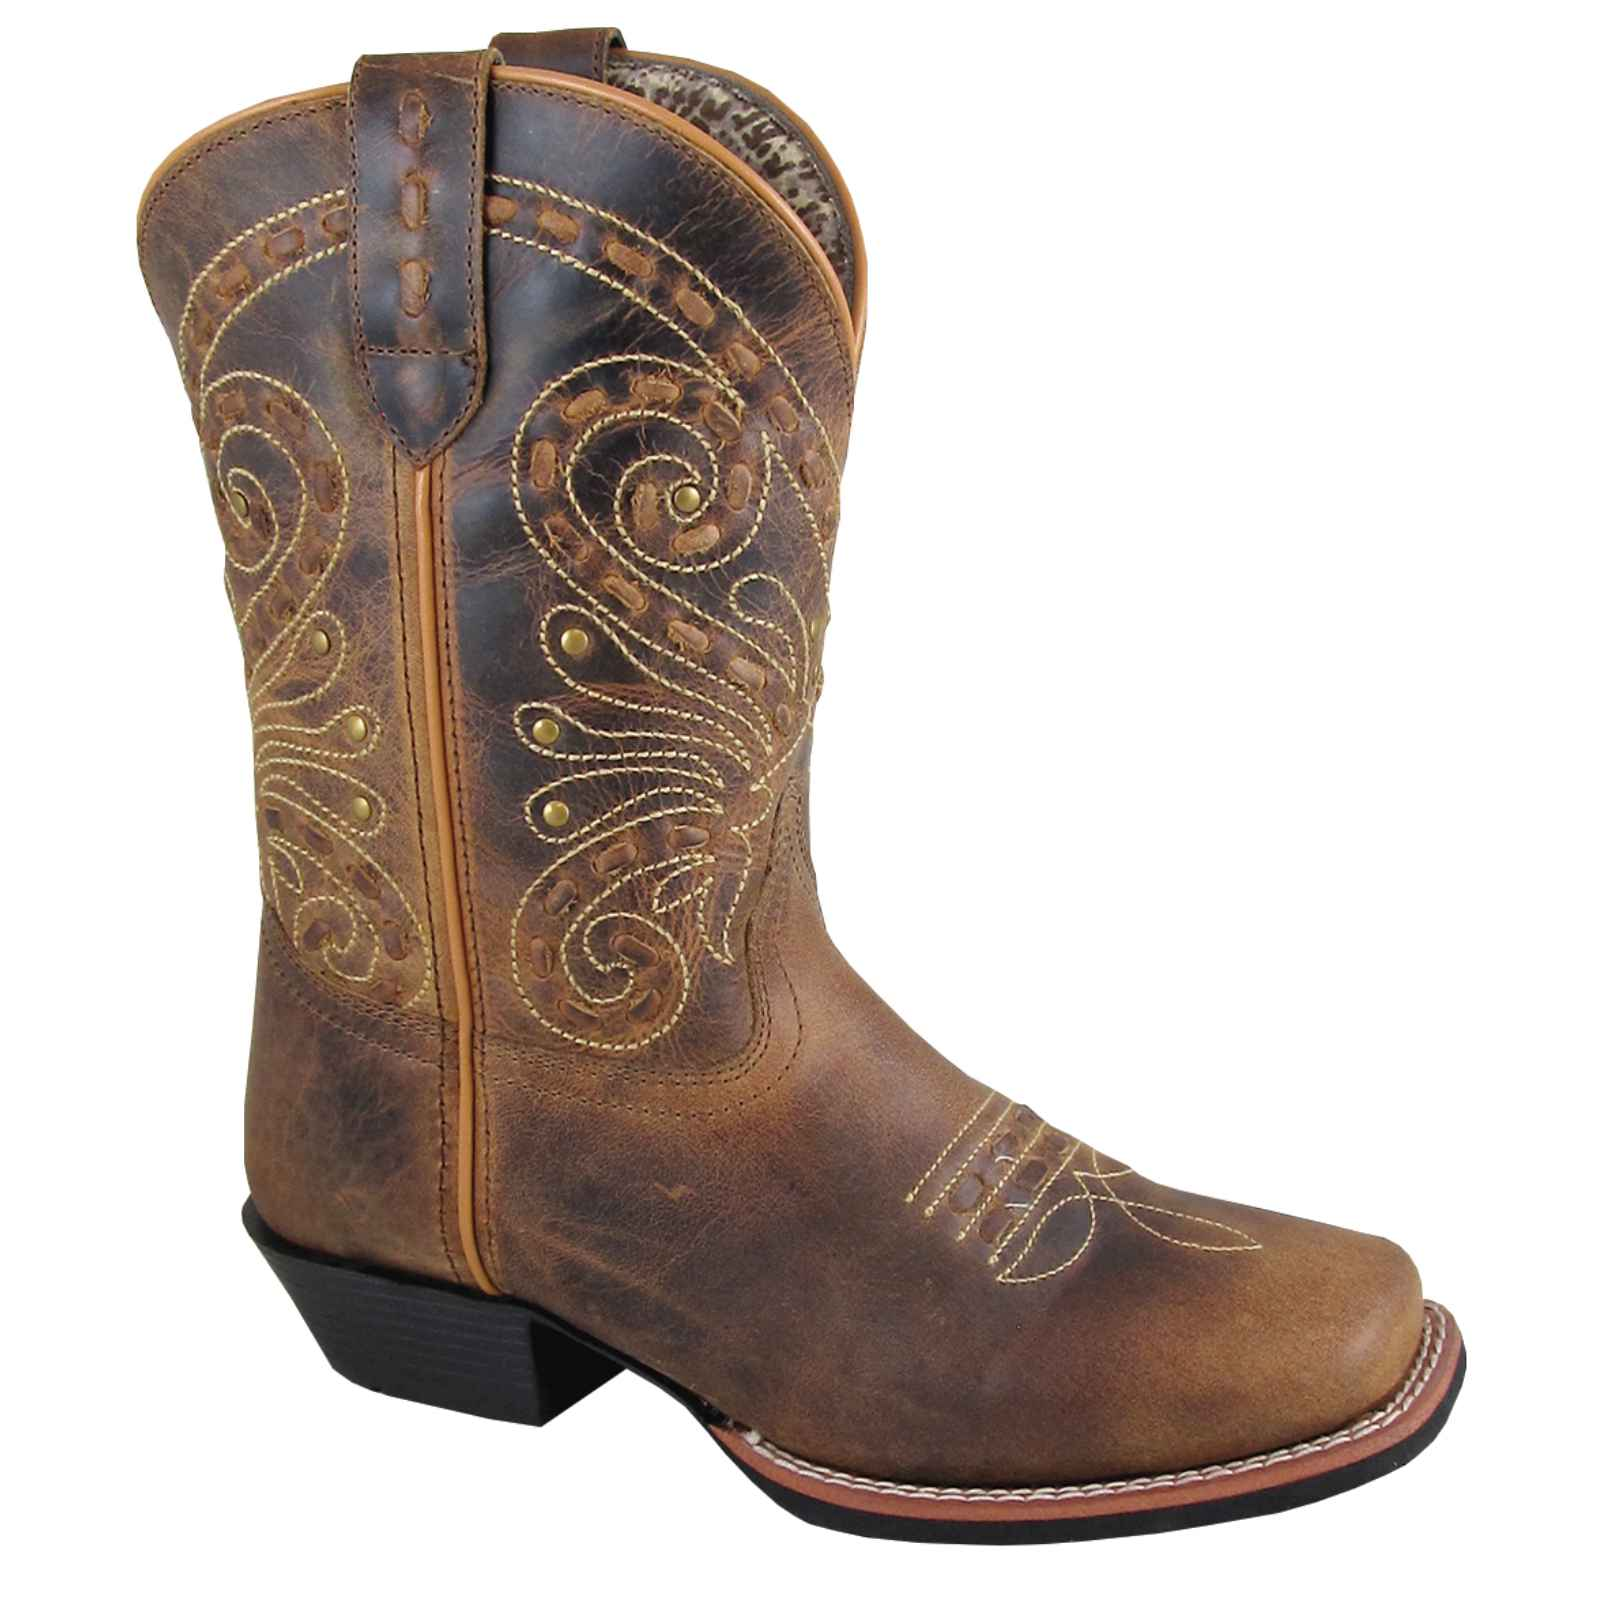 "Smoky Mountain Women's 9"" Brown Waxed Distress Leather Western Boots 6063"